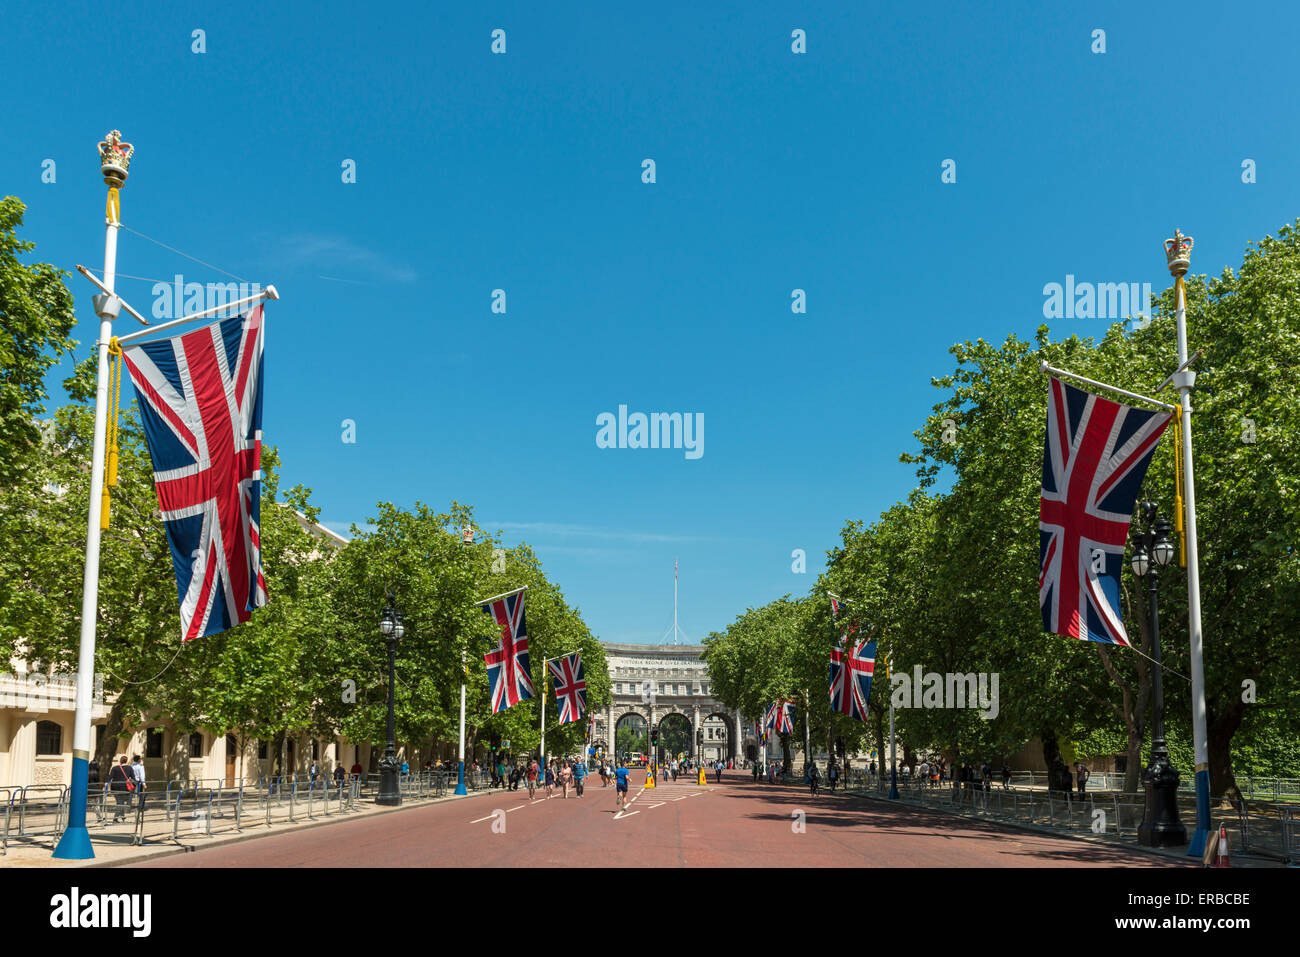 Union flags line The Mall leading to Admiralty Arch in London on a sunny day - Stock Image